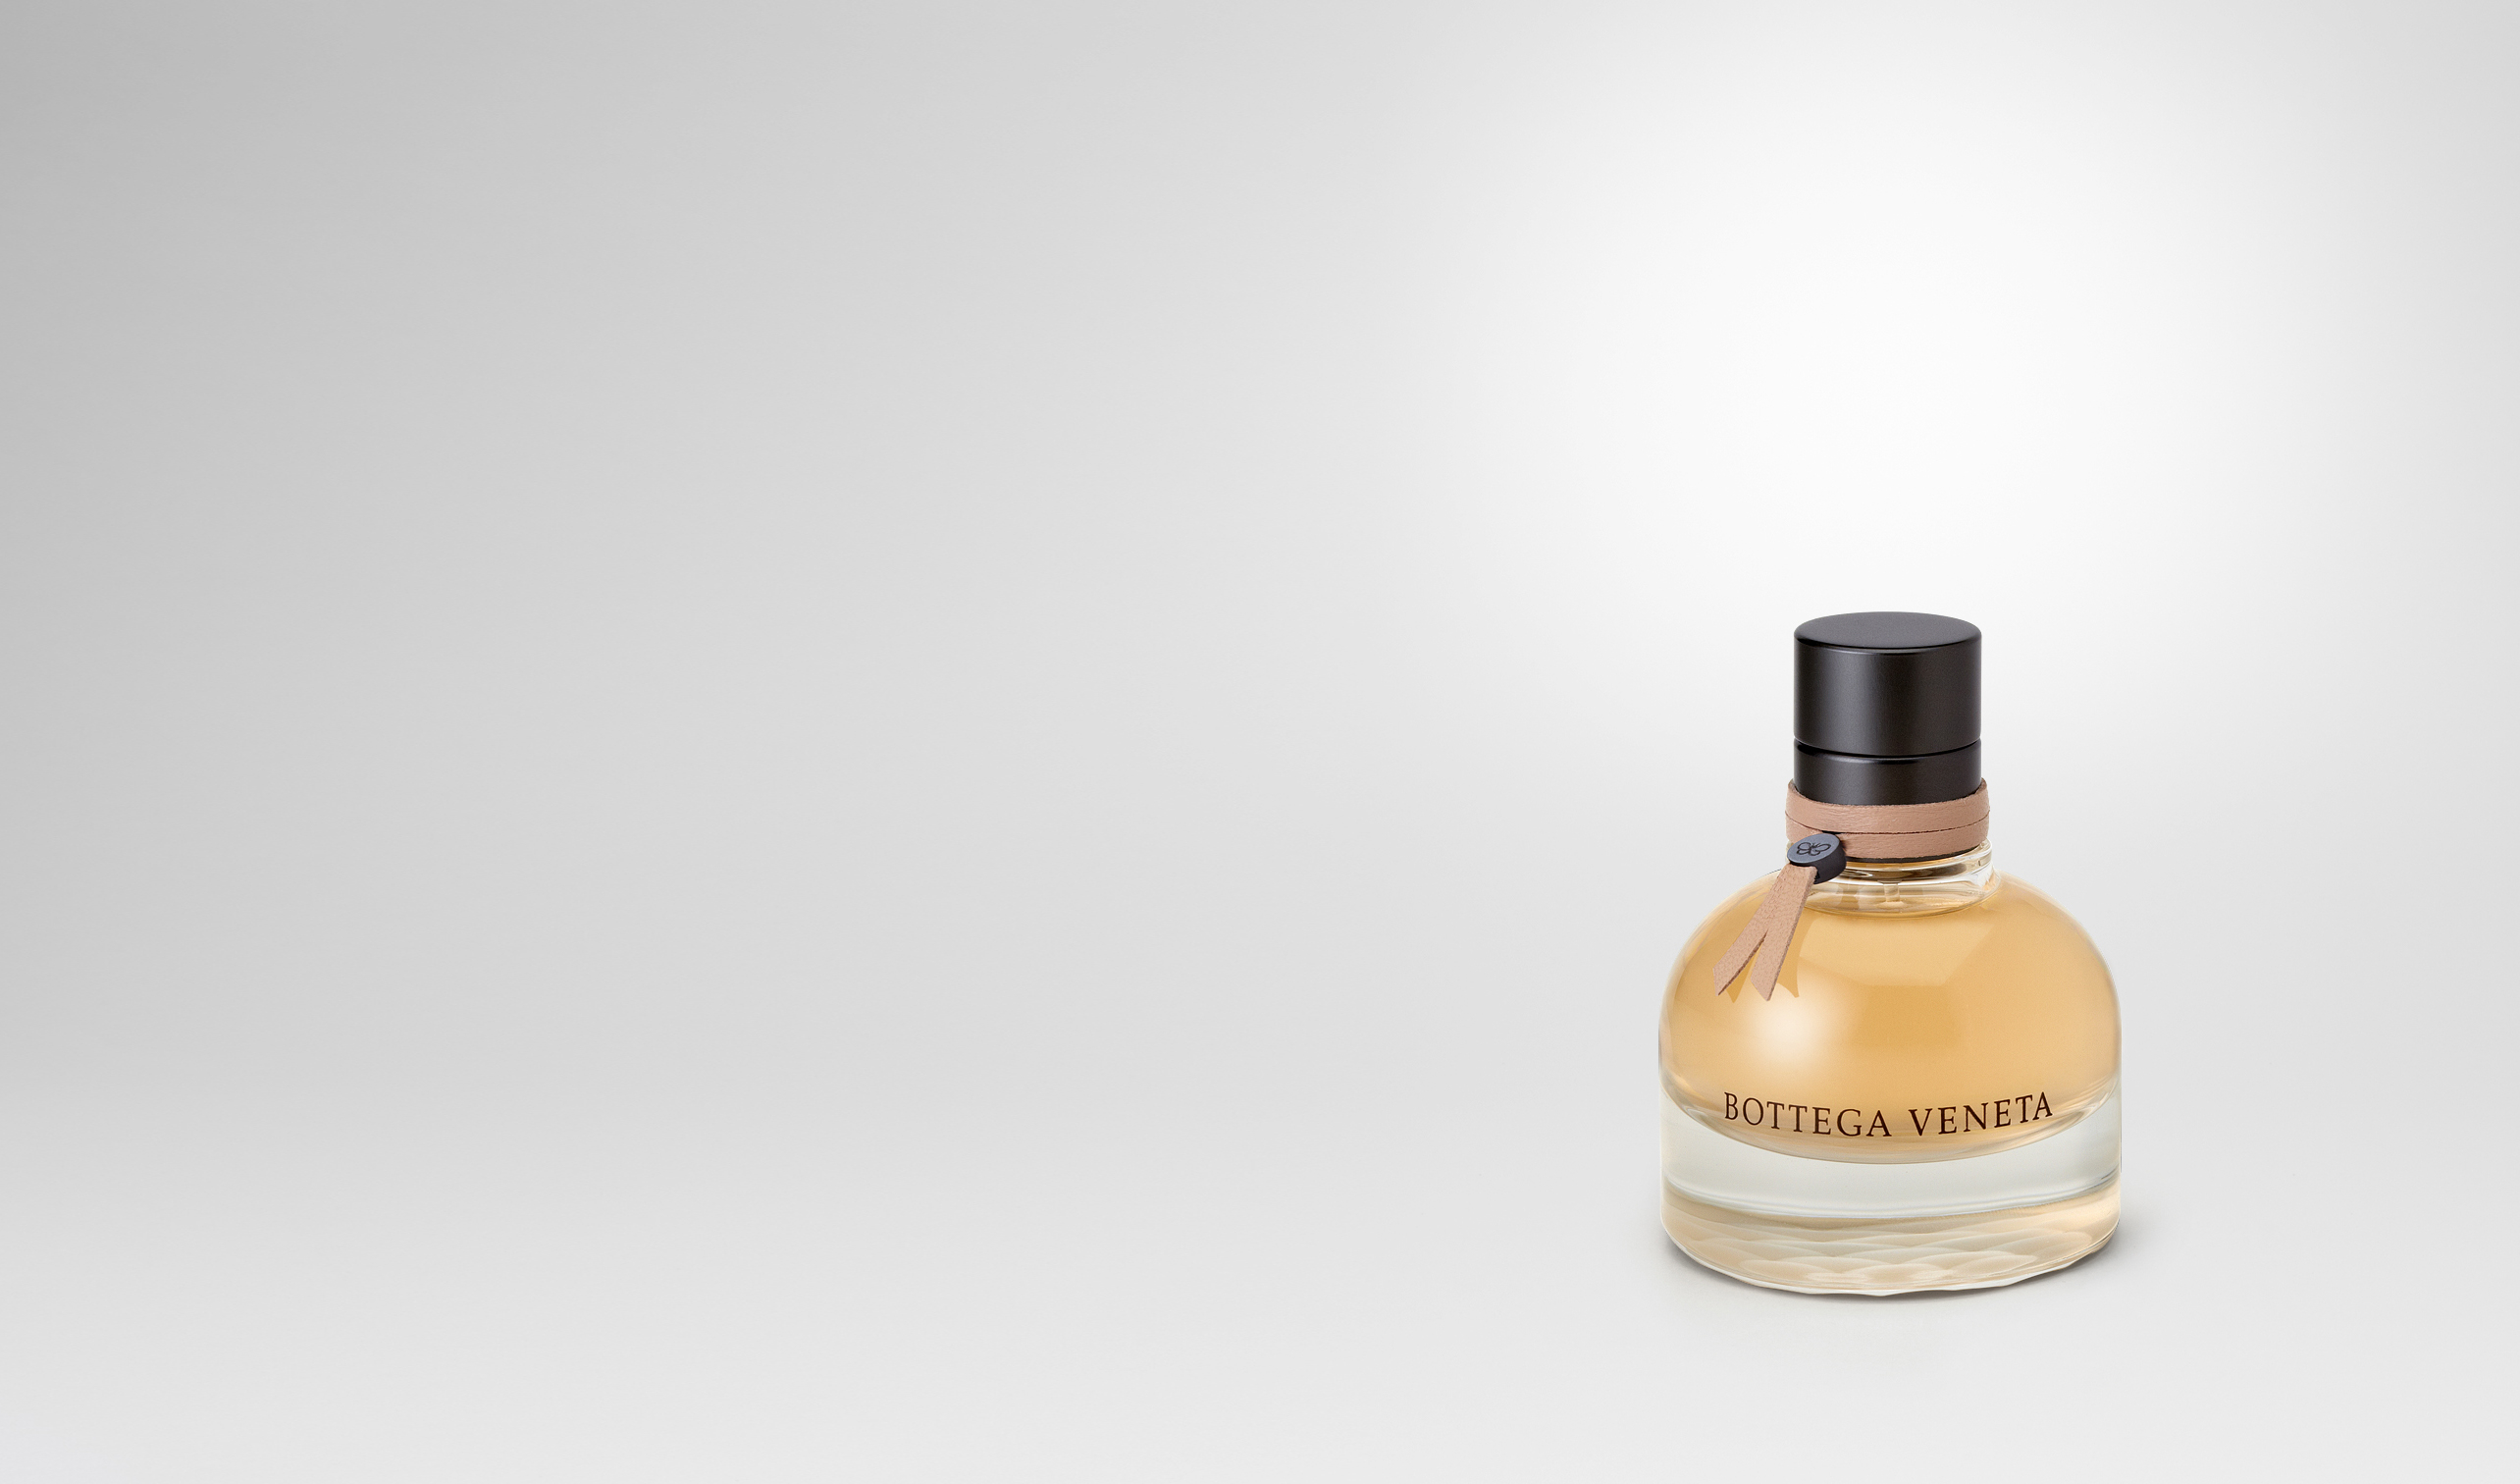 BOTTEGA VENETA Fragrance D Bottega Veneta Eau de Parfum 30ml pl